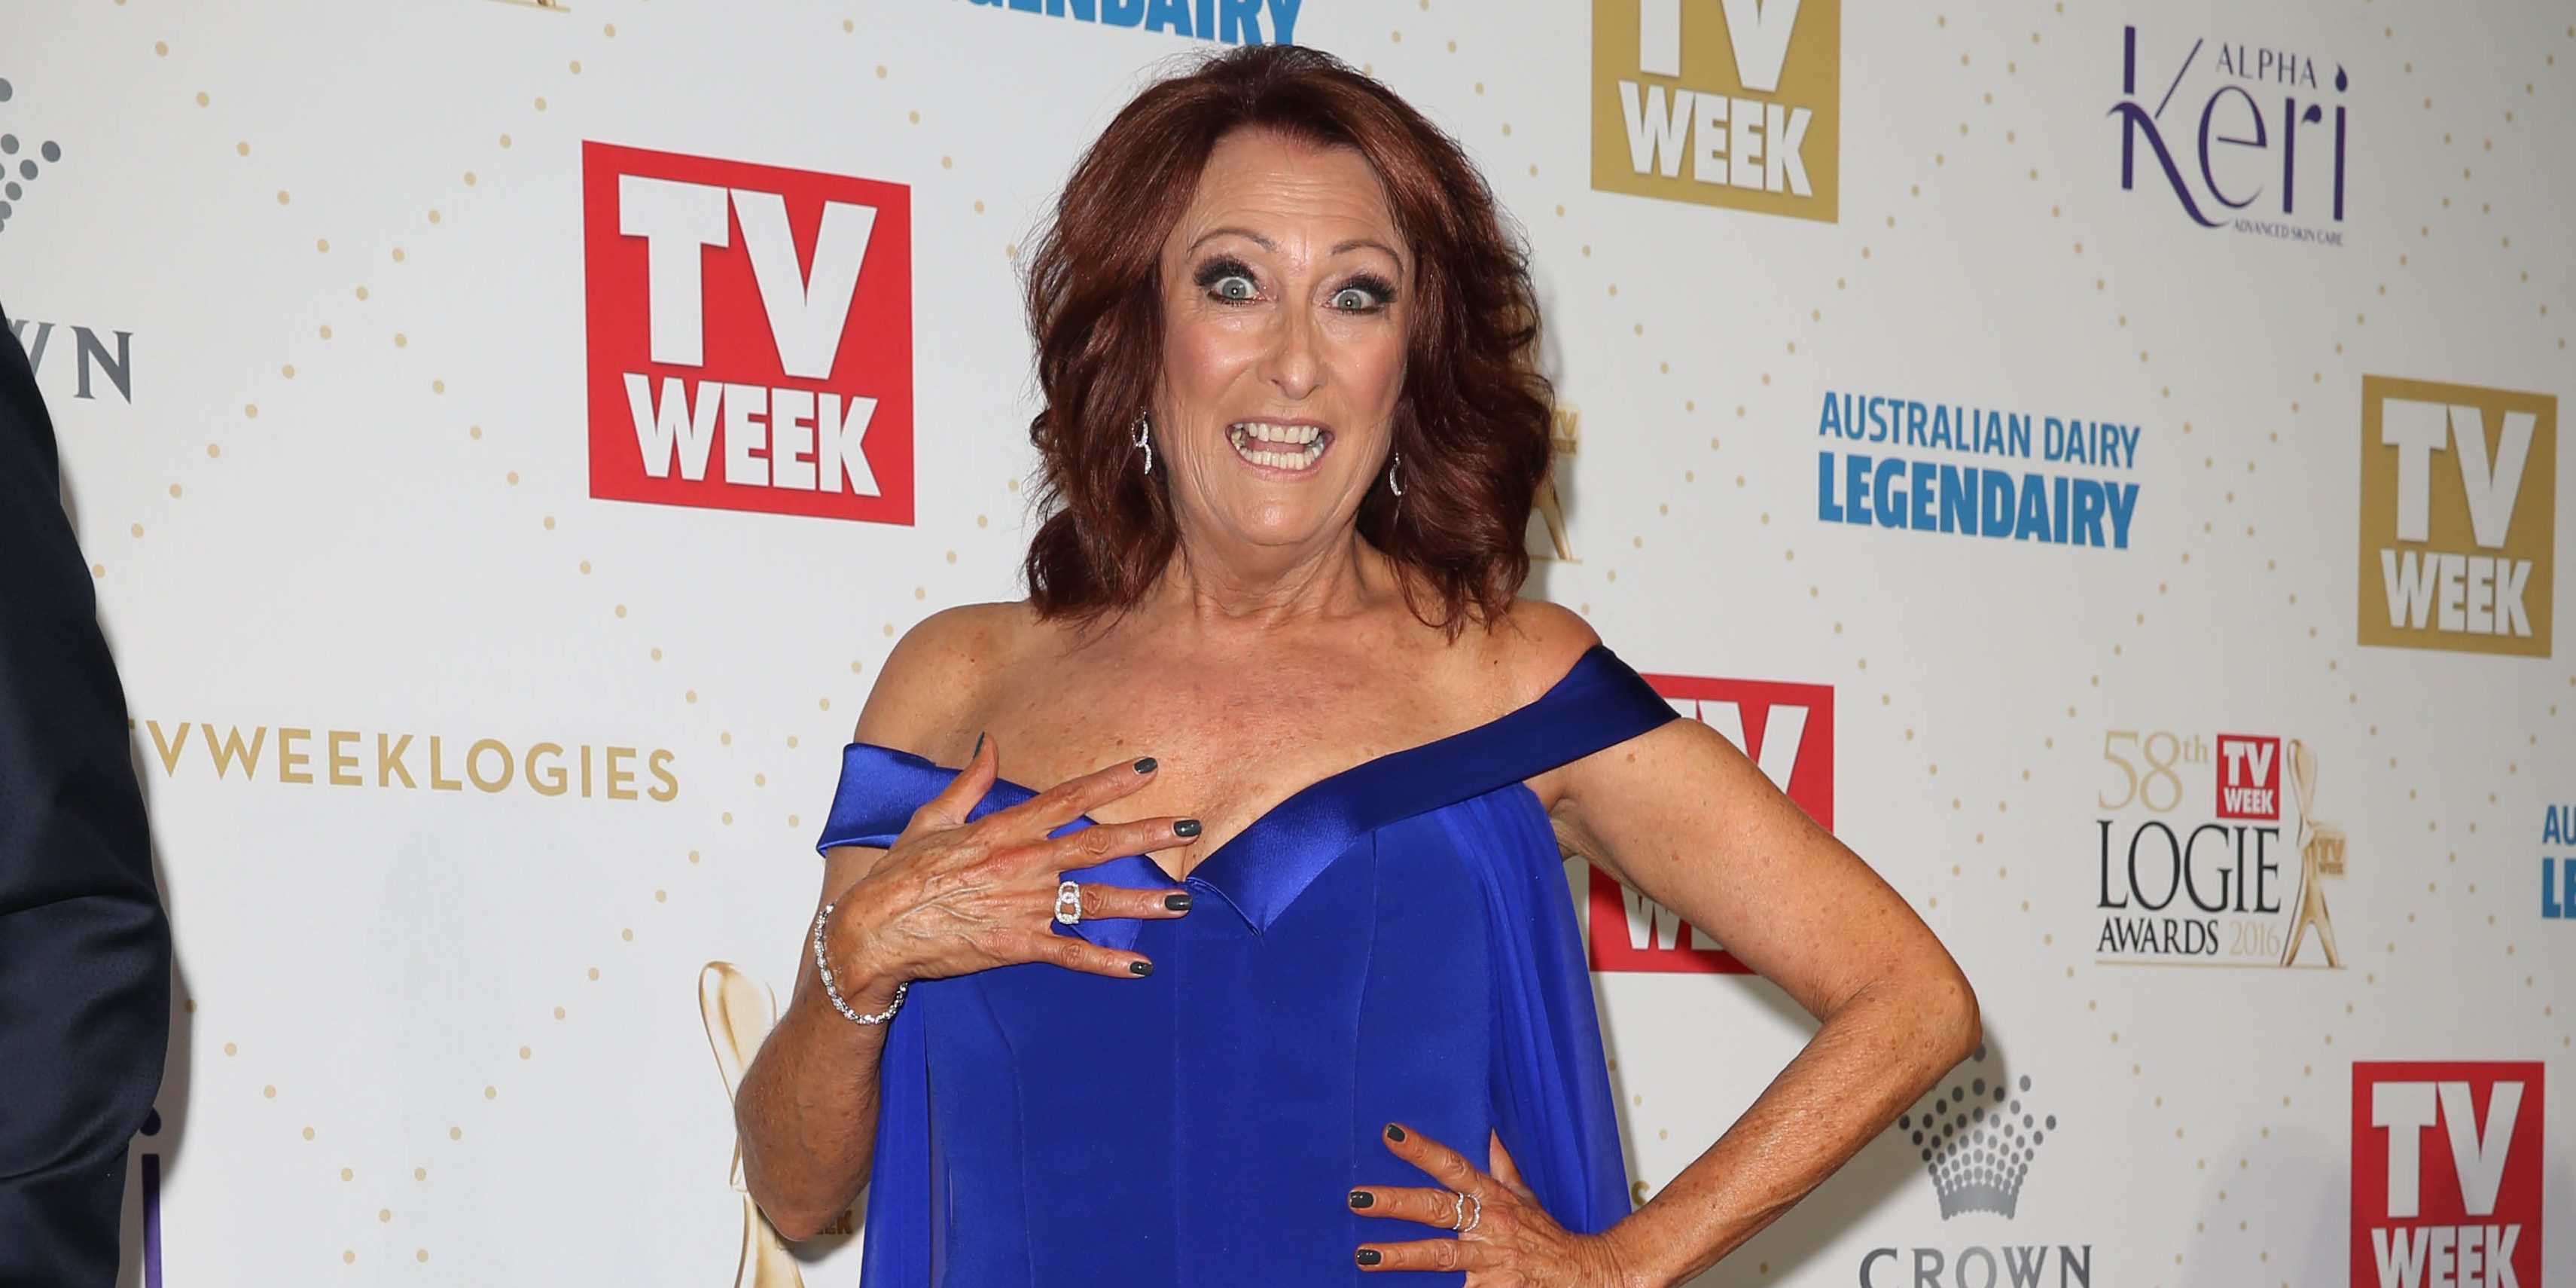 Home and Away's Lynne McGranger reveals she gets X-rated messages!